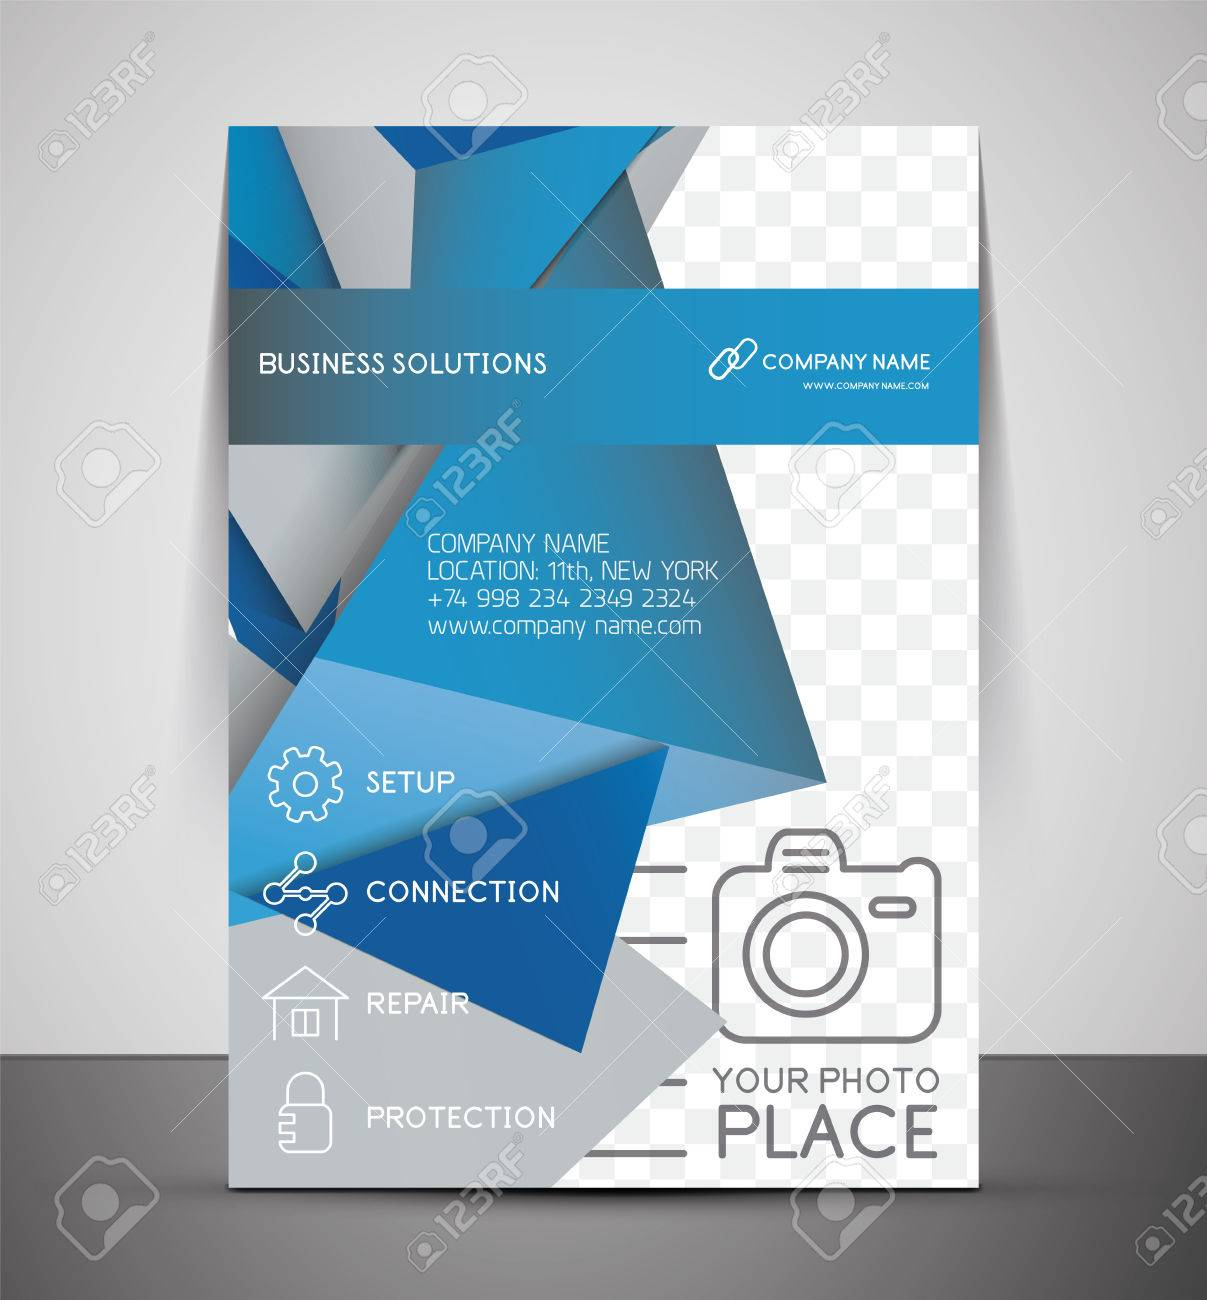 cmyk business corporate flyer template geometrical design cmyk business corporate flyer template geometrical design stock vector 27687320